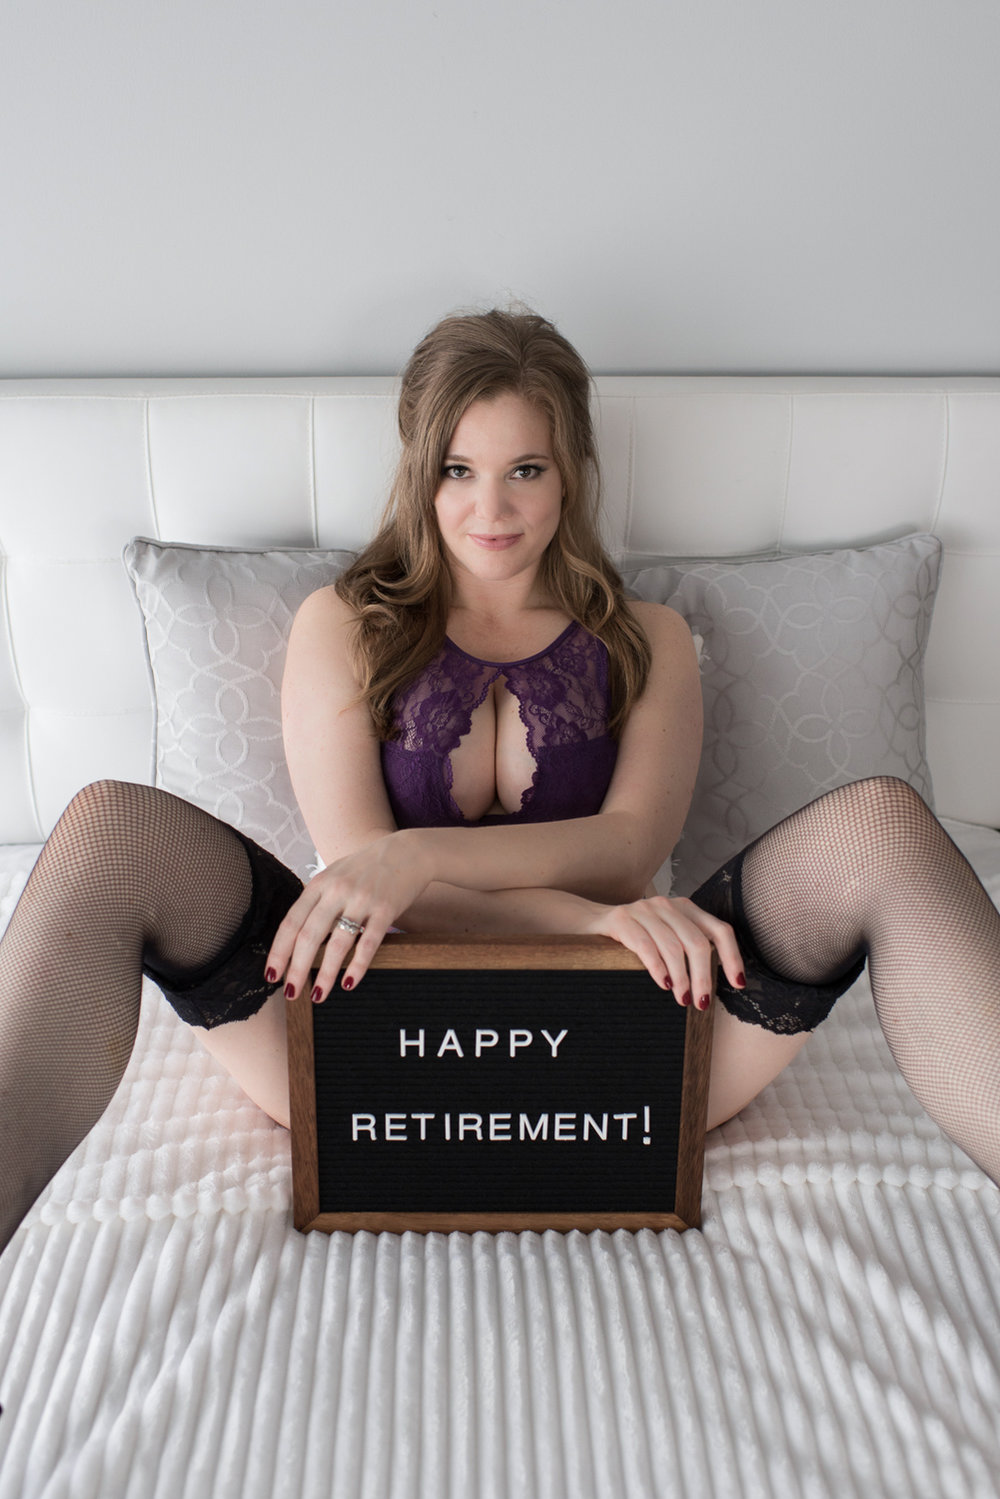 Boudoir gift idea to celebrate retirement